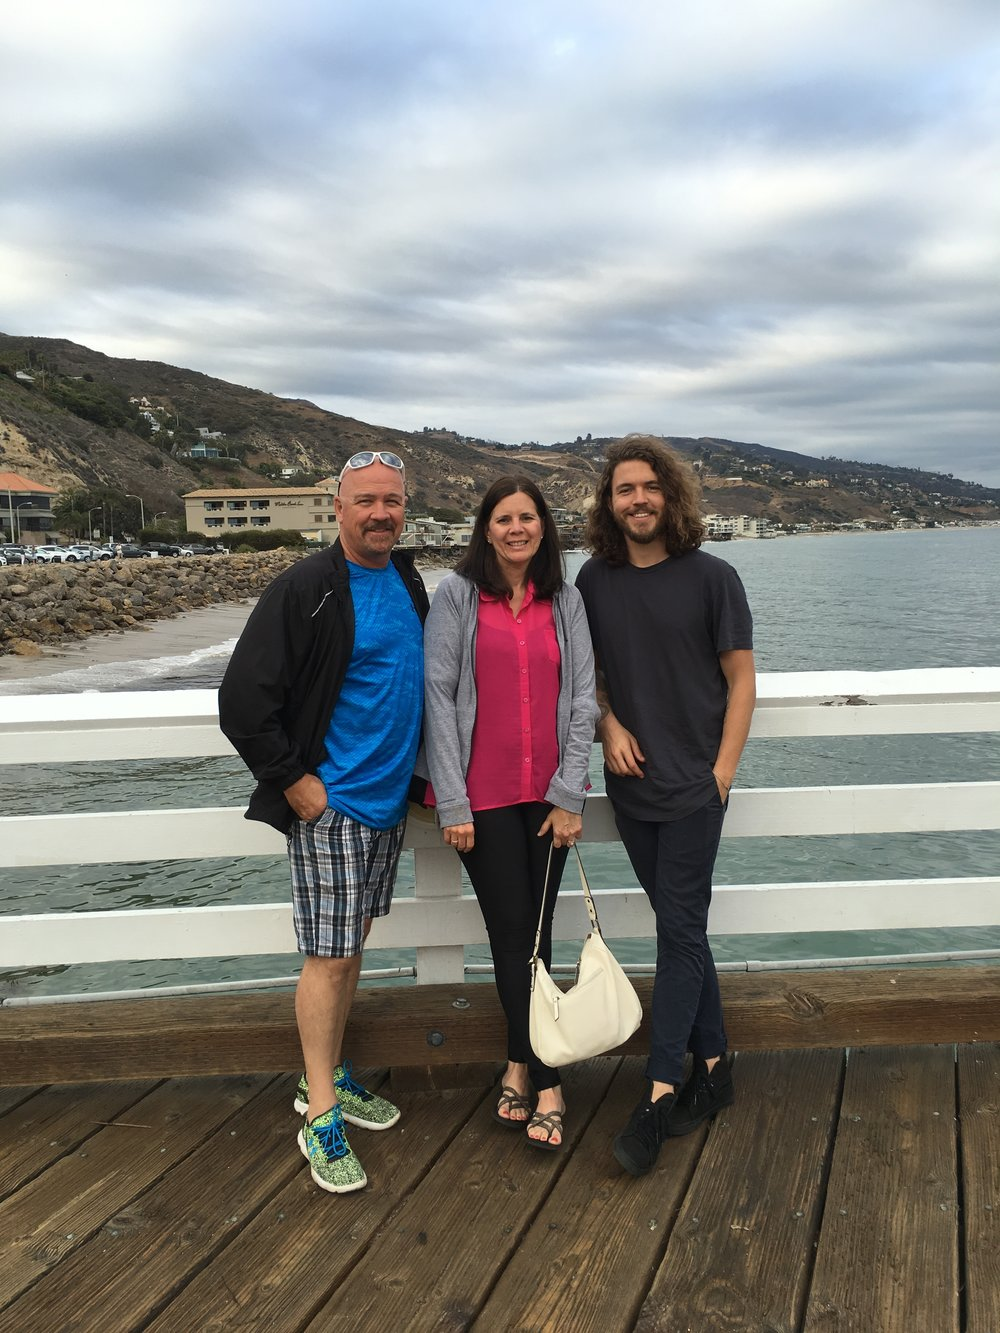 Matty with my parents in Malibu.